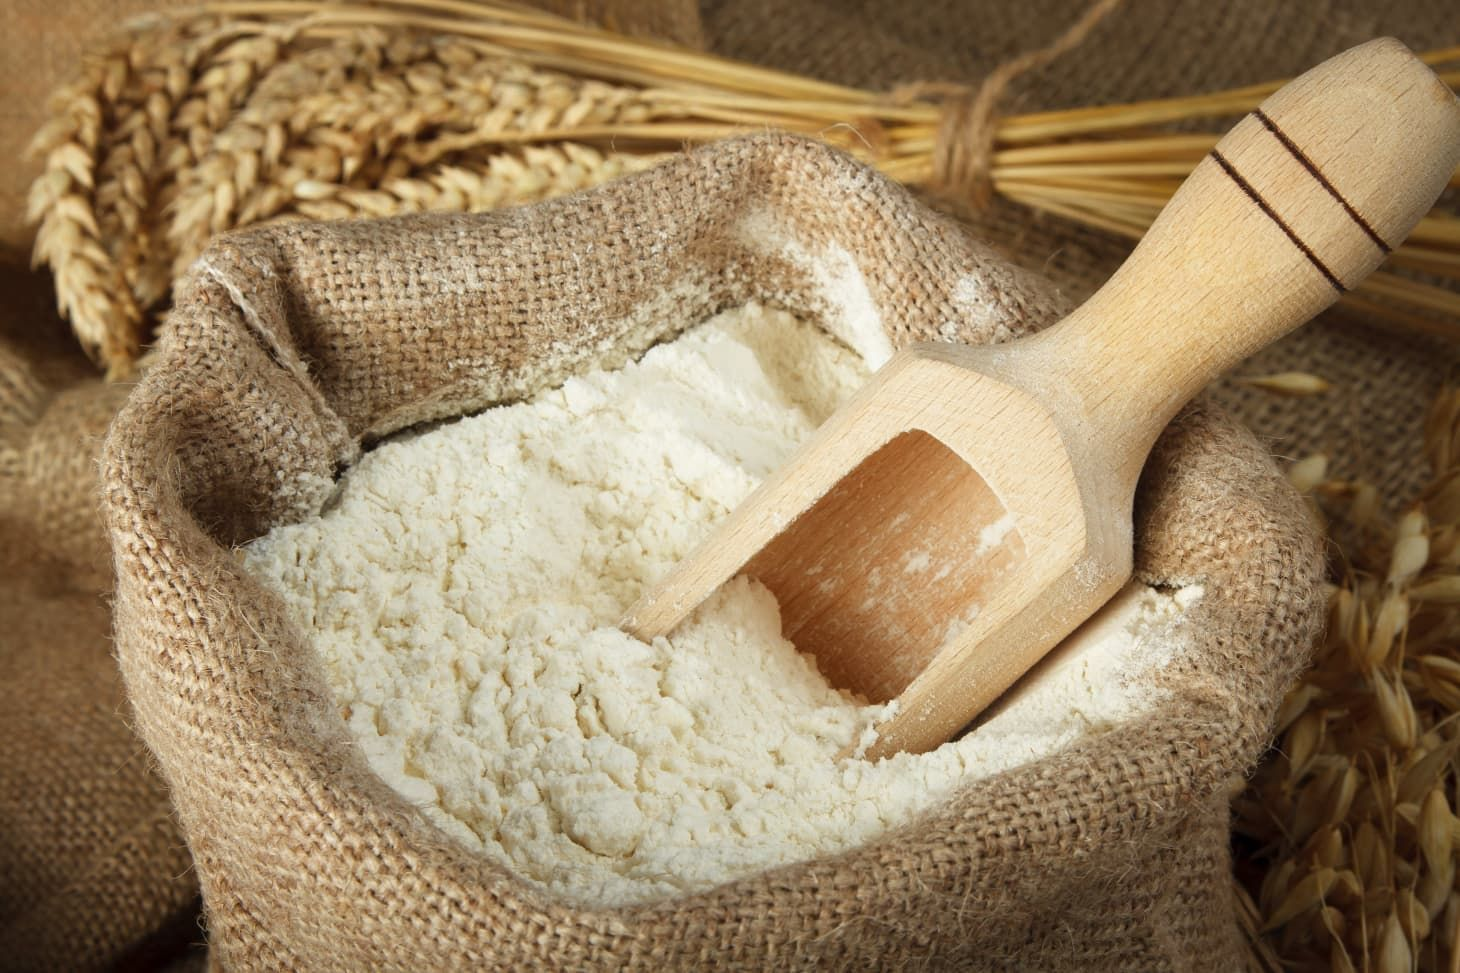 A complete guide to storing your flour flour storage